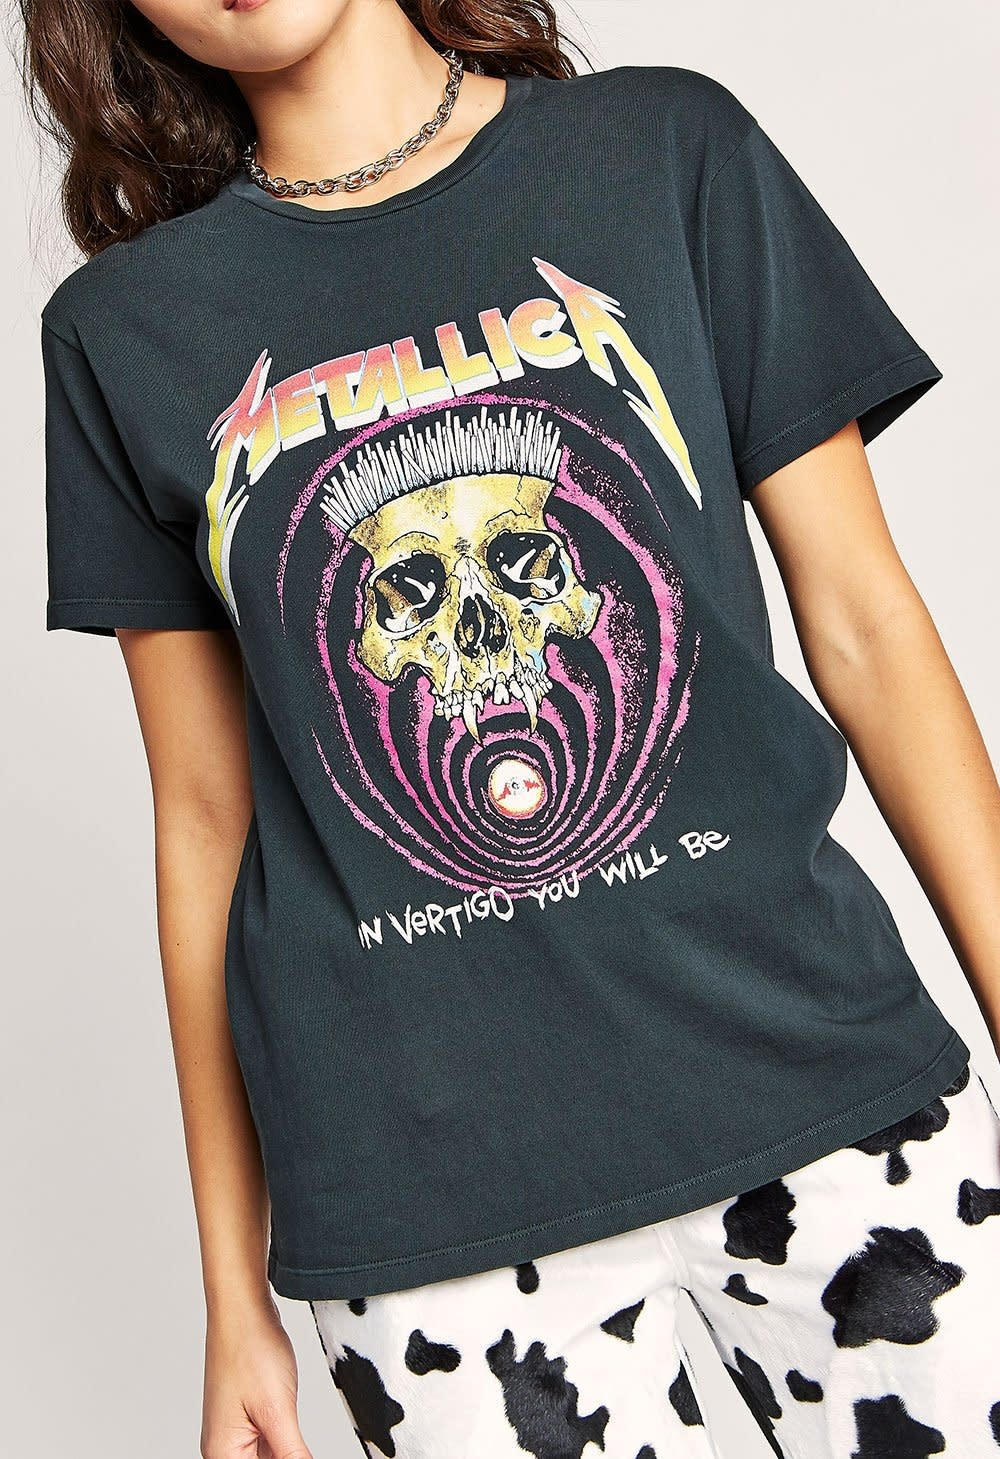 Daydreamer LA Metallica in Vertigo Tee